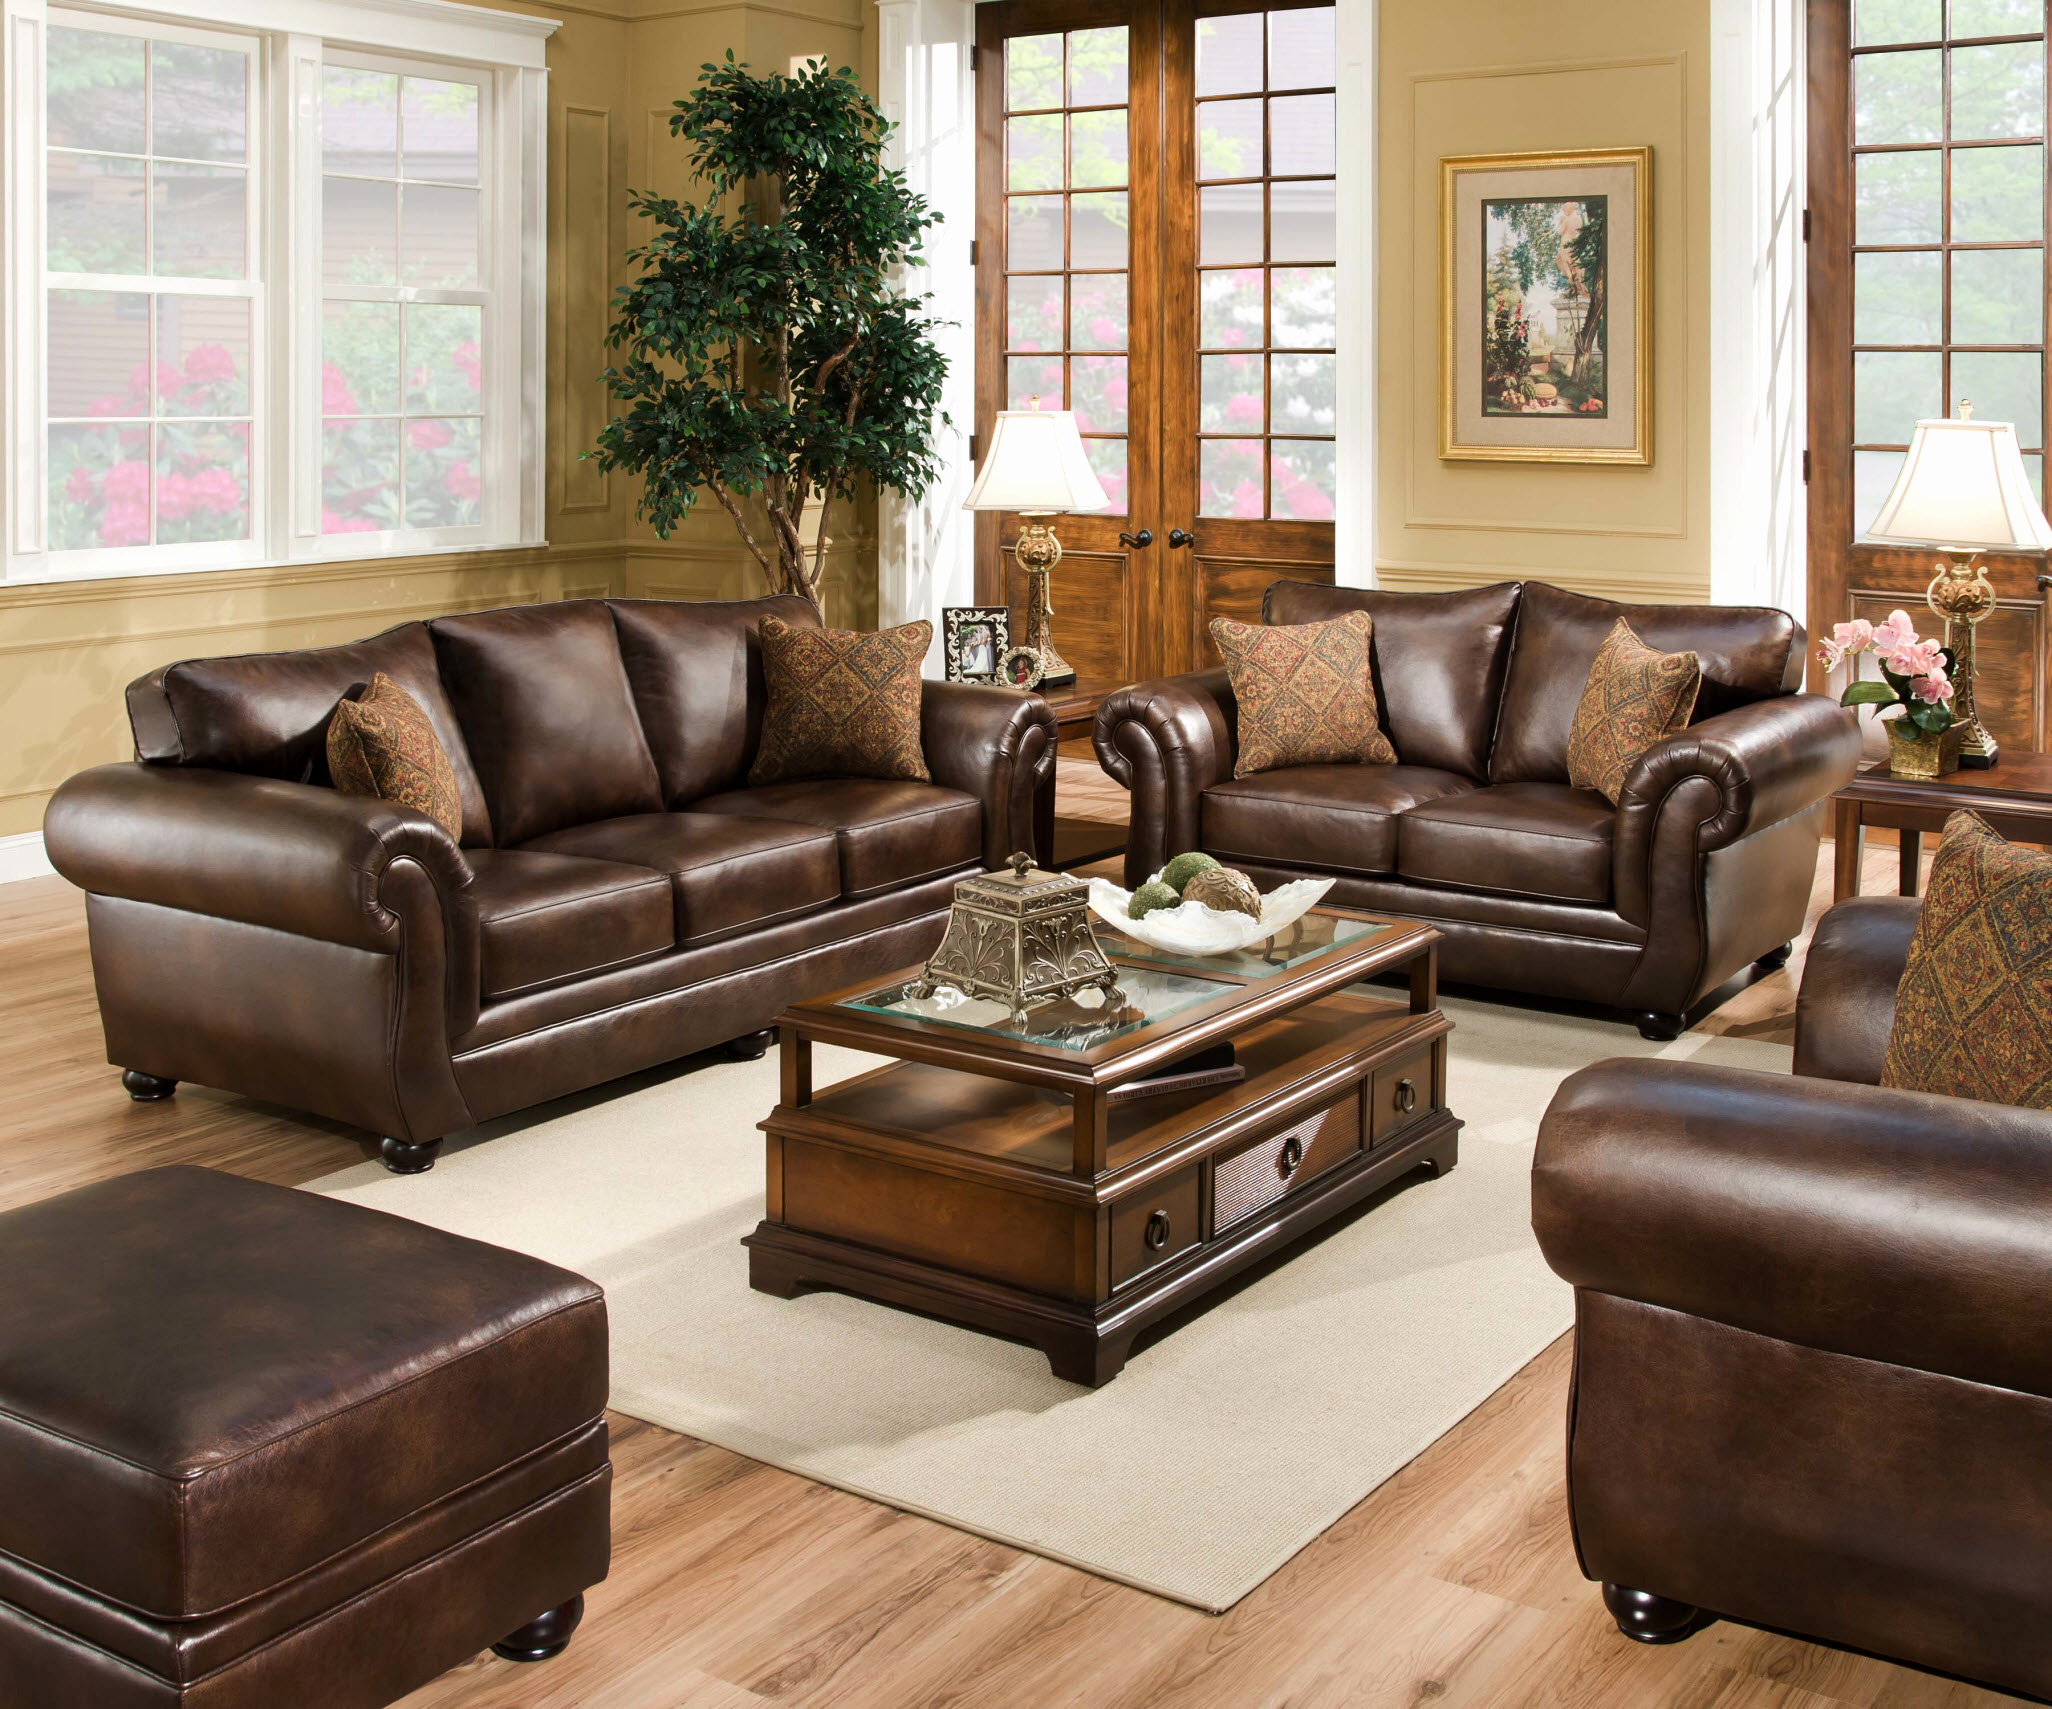 Simmons Living Room Furniture Collections Of Furniture Fantastic regarding Simmons Living Room Set